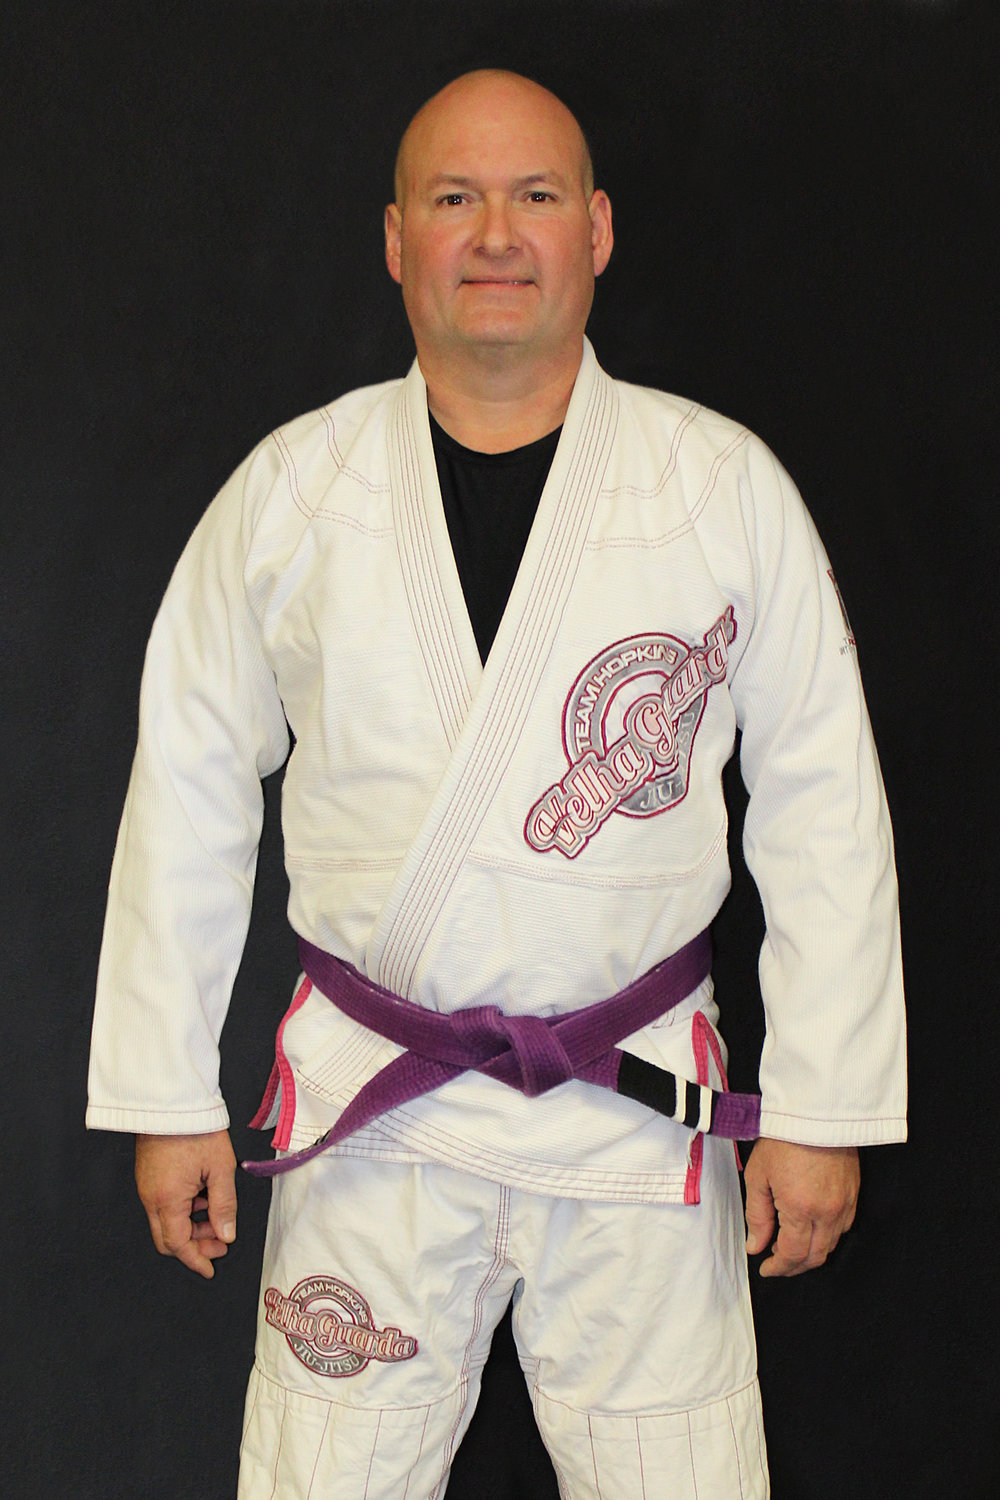 "Joe Boone - InstructorJoe is a Gracie Jiu-Jitsu Purple Belt under Black Belt Mike Braswell and has been training since 2008. He was awarded his Blue Belt in January 2015 by 3rd Degree Black Belt Allen Hopkins. Joe has been dubbed ""Shooter"" at the Academy because of his extensive background in firearms which includes 20+ years combined experience in professional gunsmithing & firearms manufacturing. He holds the classification of Grandmaster in United States Practical Shooting Association (U.S.P.S.A.). His professional shooting career has taken him all over the United States, Europe, Africa, and Asia to compete."